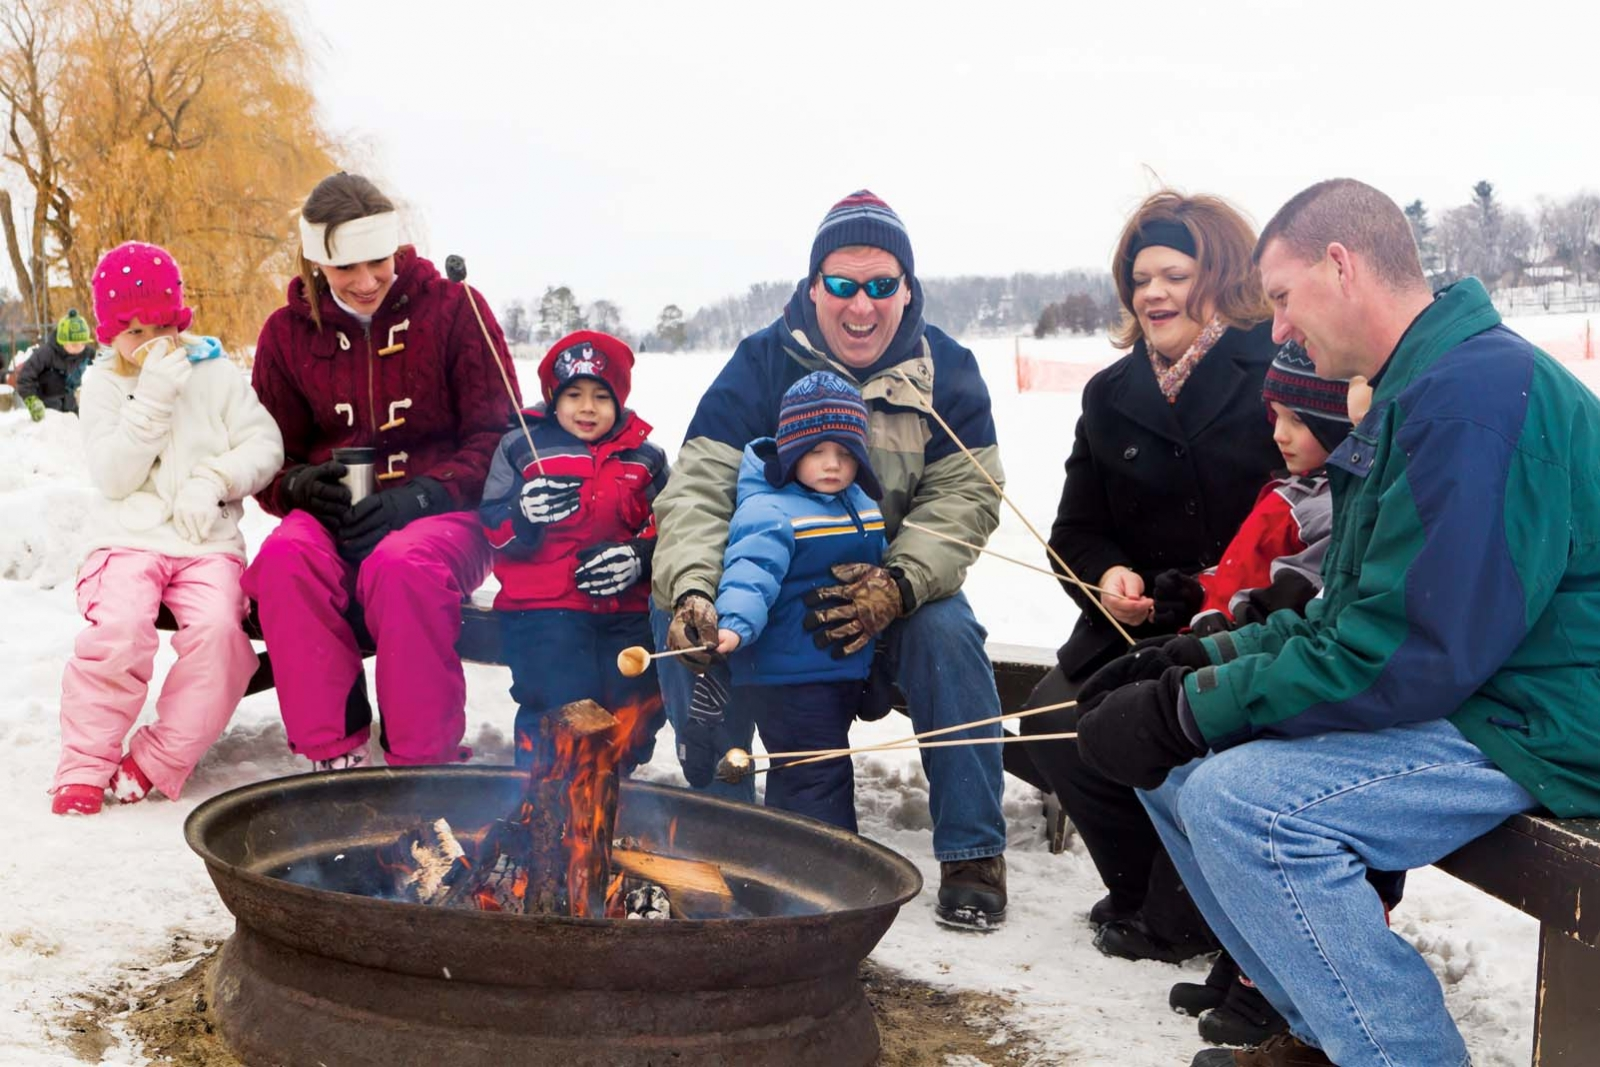 A toasty family outing at Cragun's Resort.